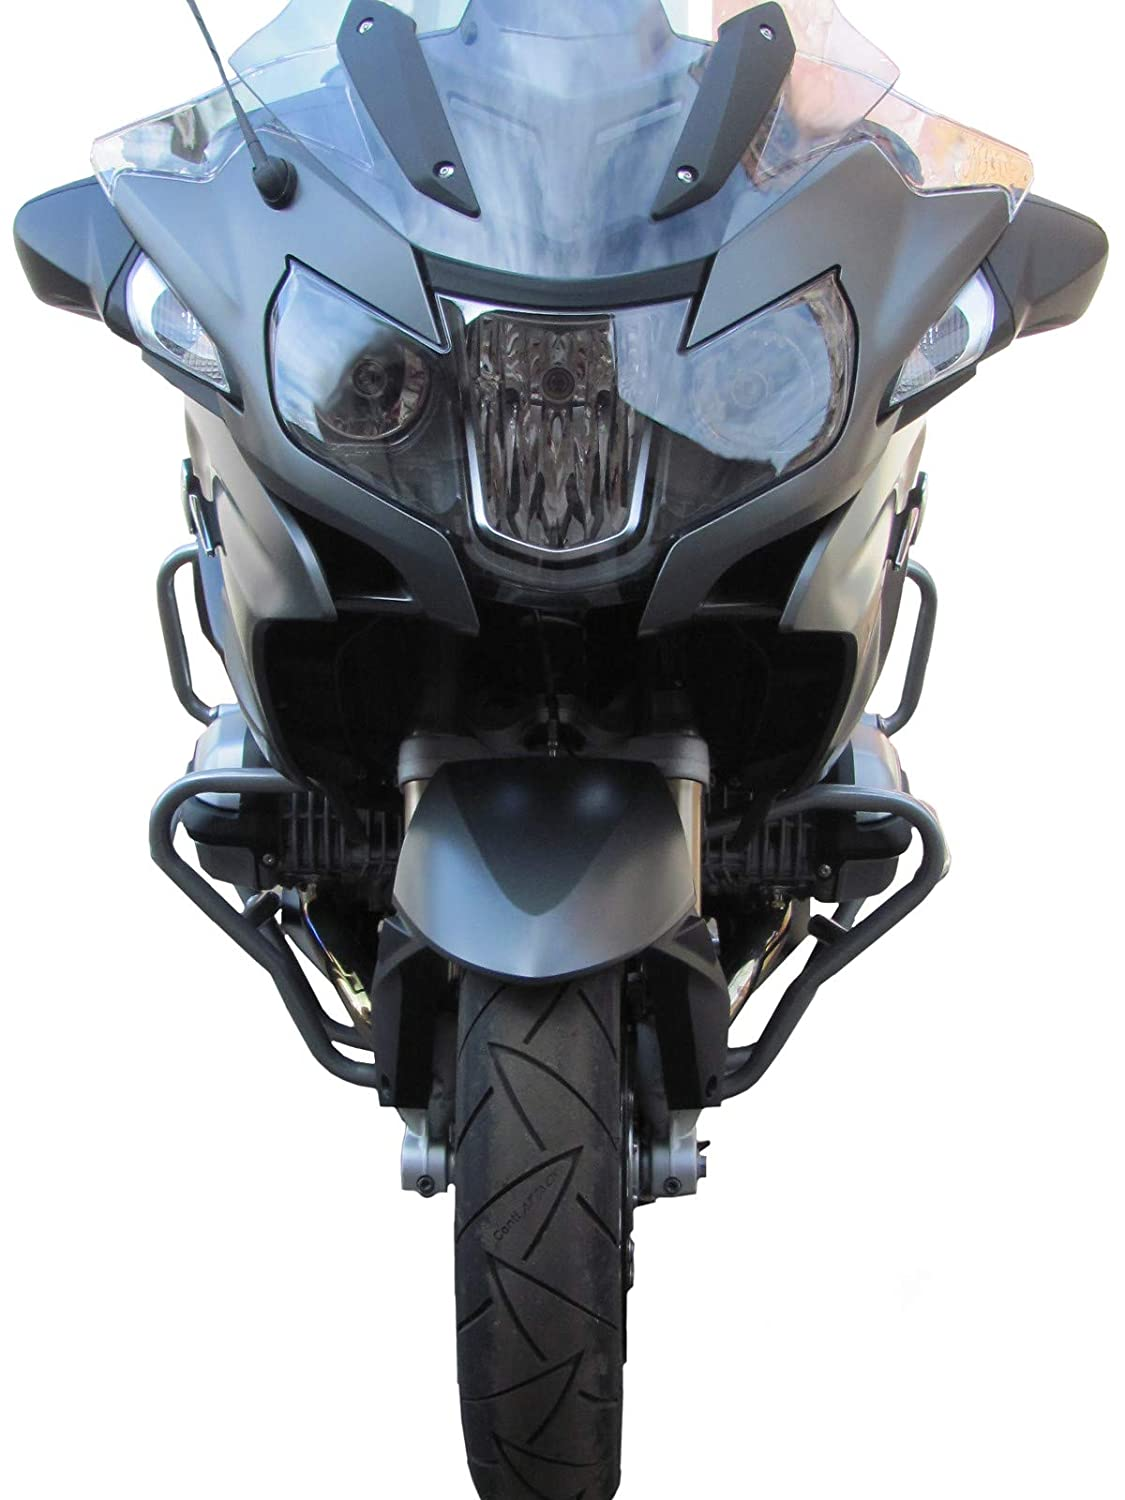 Paramotore HEED R 1200 RT LC argento 2014-2018